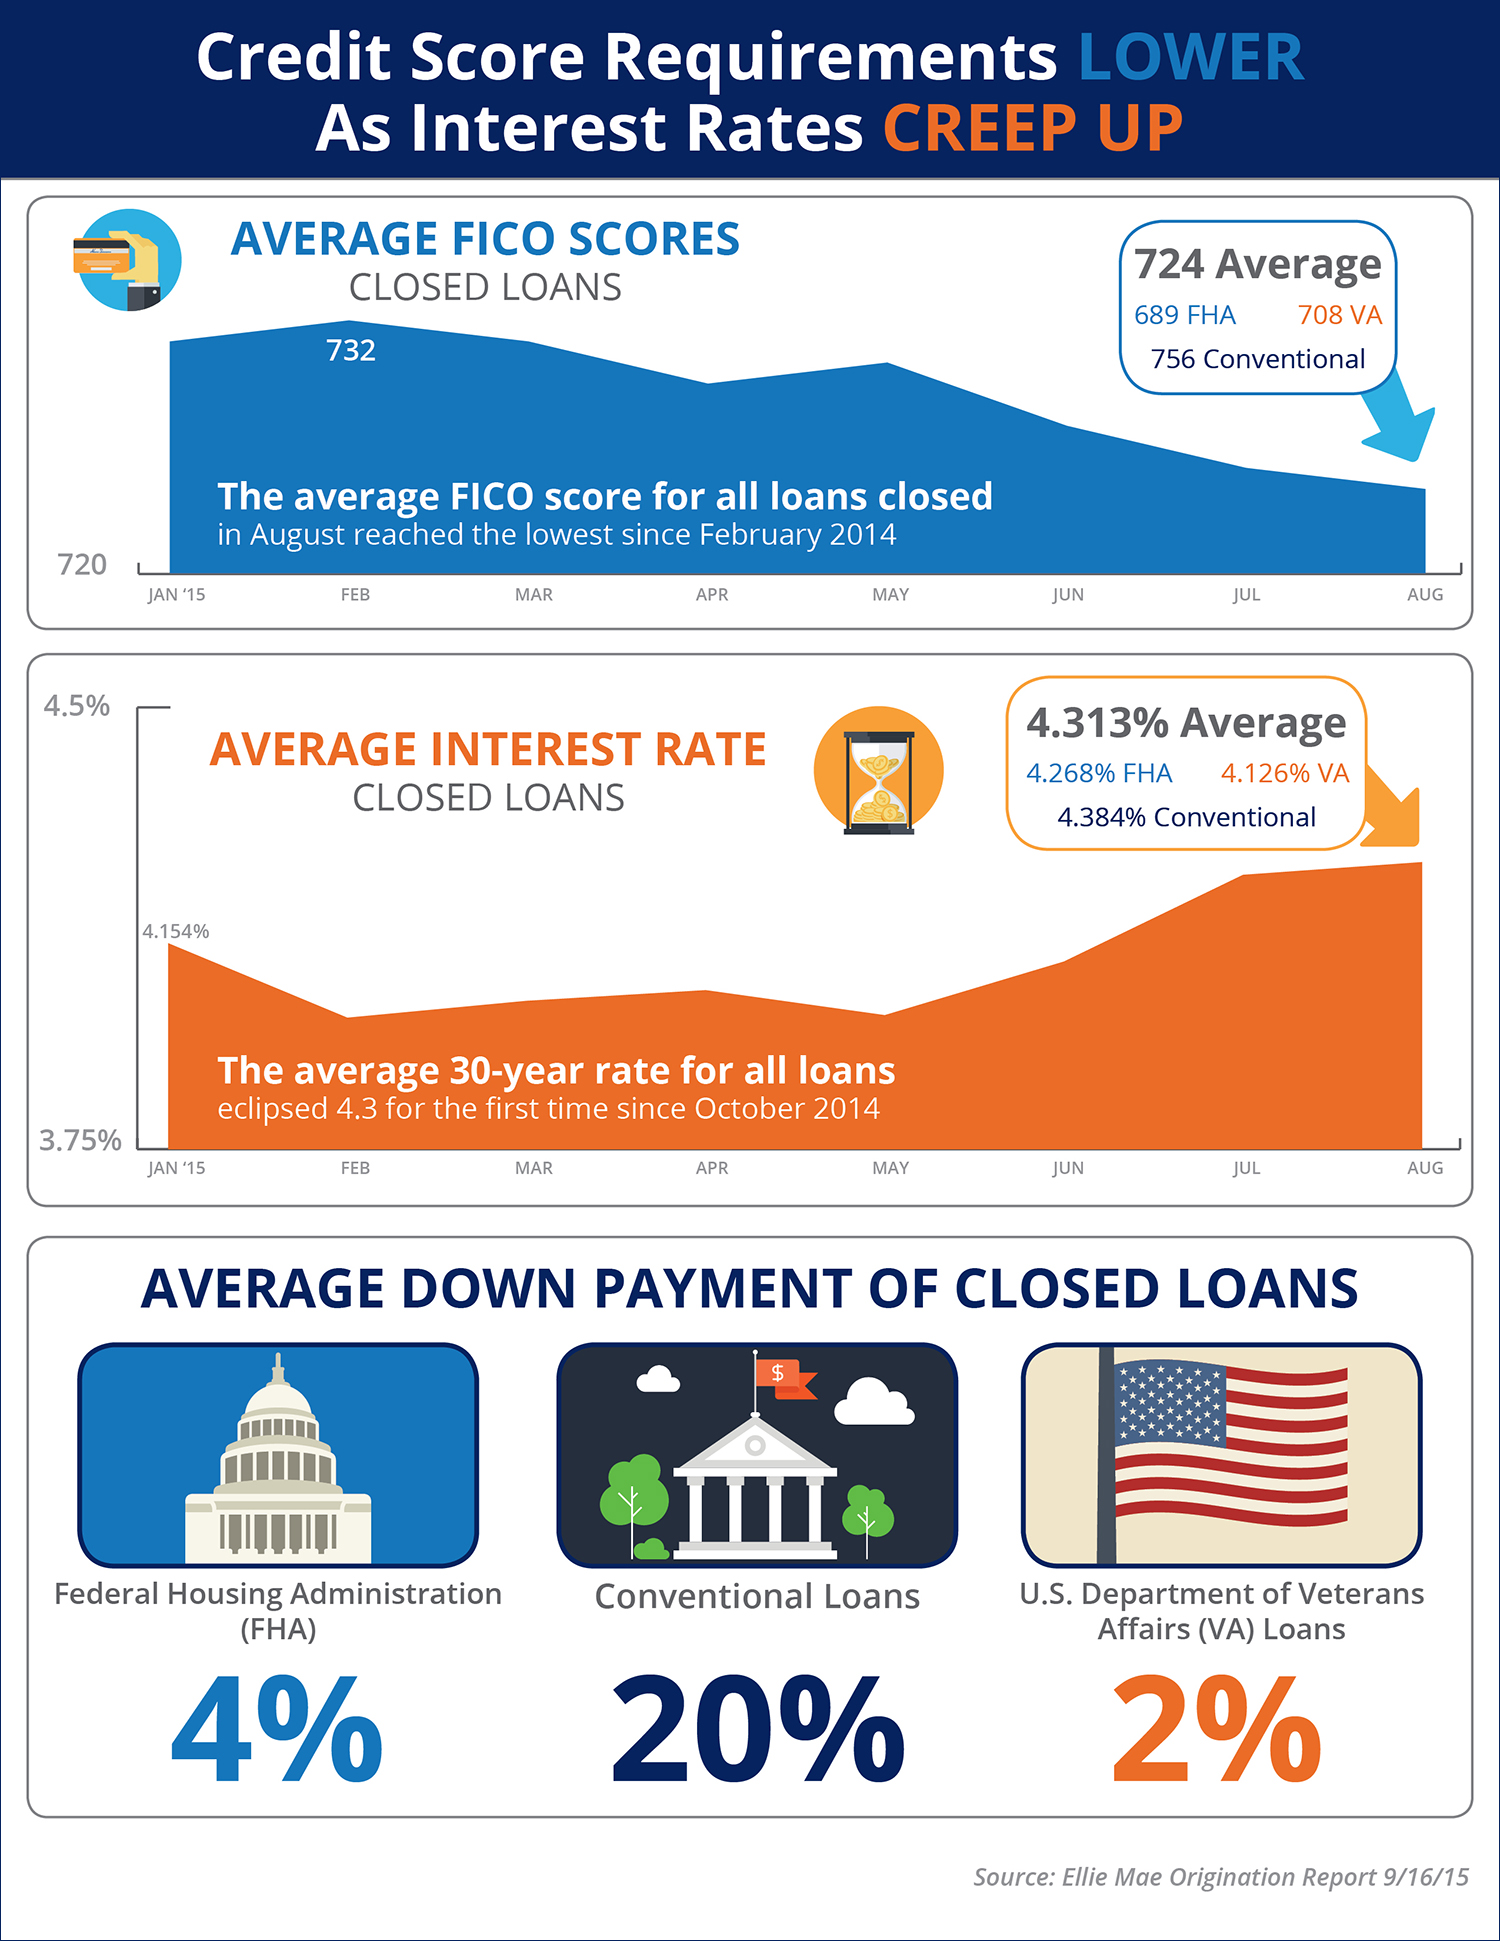 Credit Score Requirements LOWER As Interest Rates CREEP UP! [INFOGRAPHIC] | Simplifying The Market